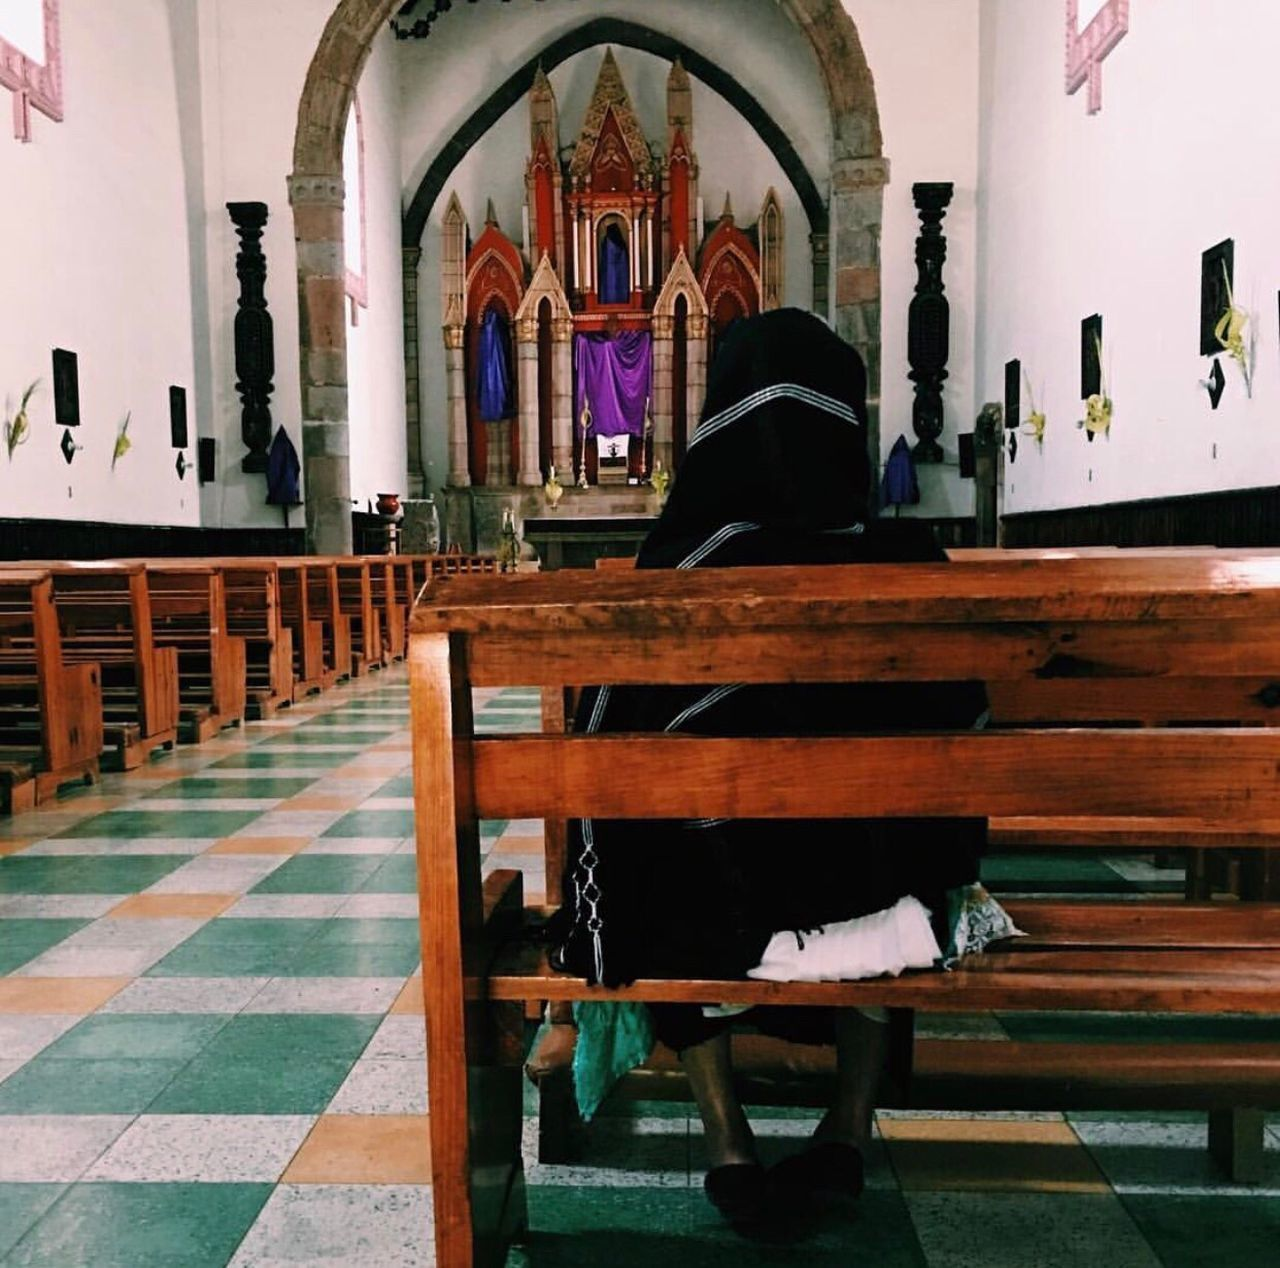 religion, place of worship, spirituality, pew, indoors, real people, men, full length, day